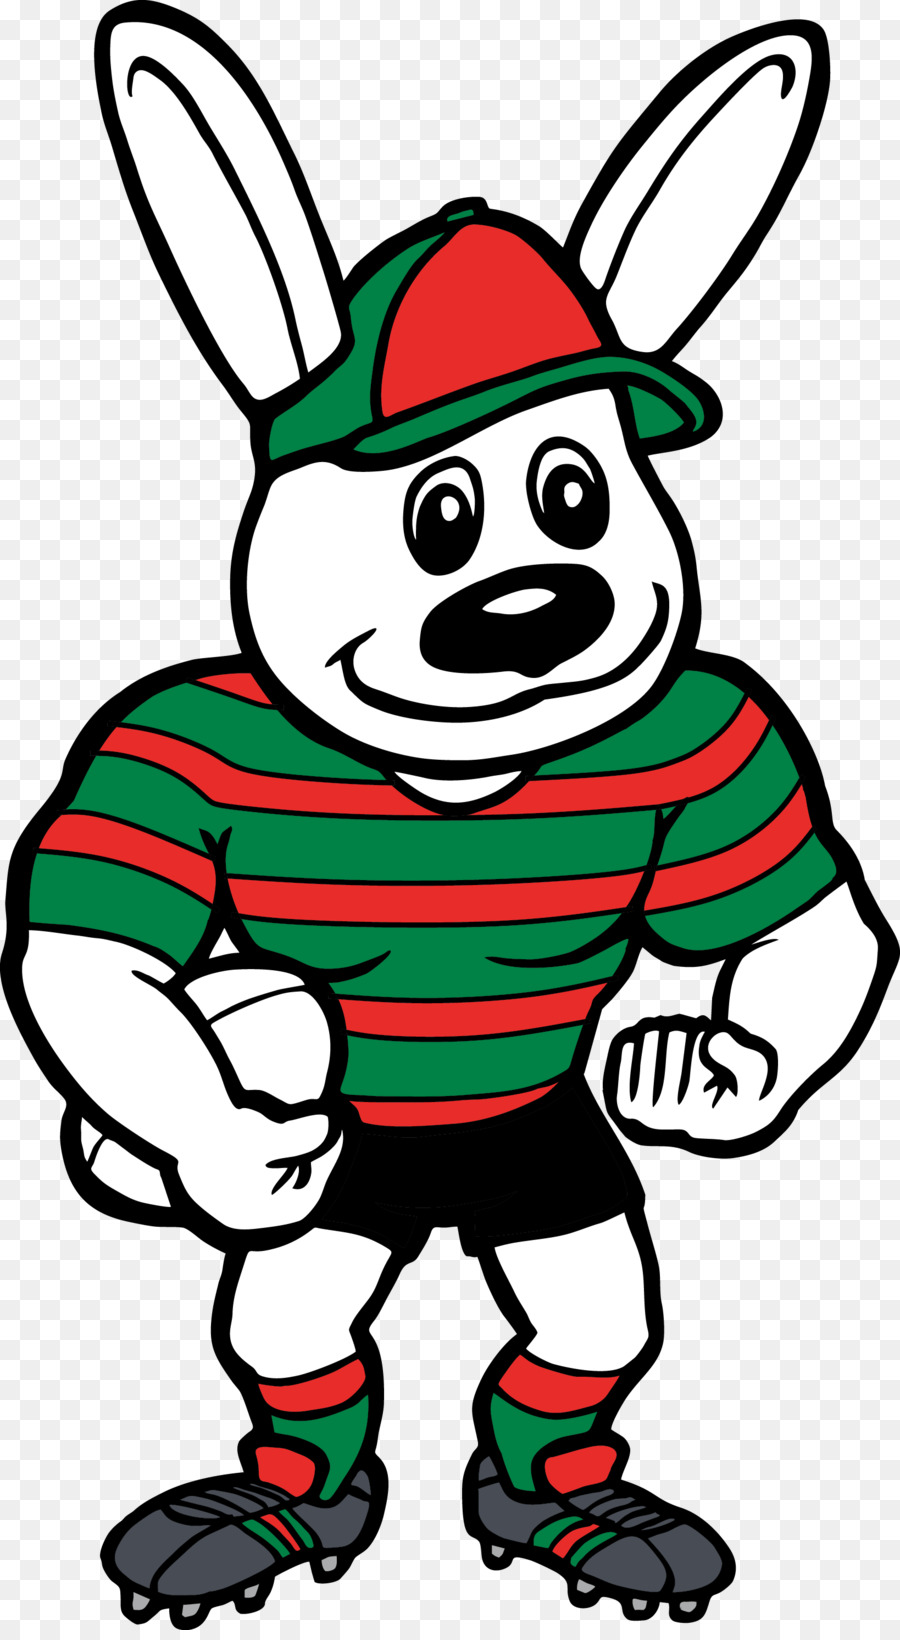 900x1640 South Sydney Rabbitohs National Rugby League Manly Warringah Sea